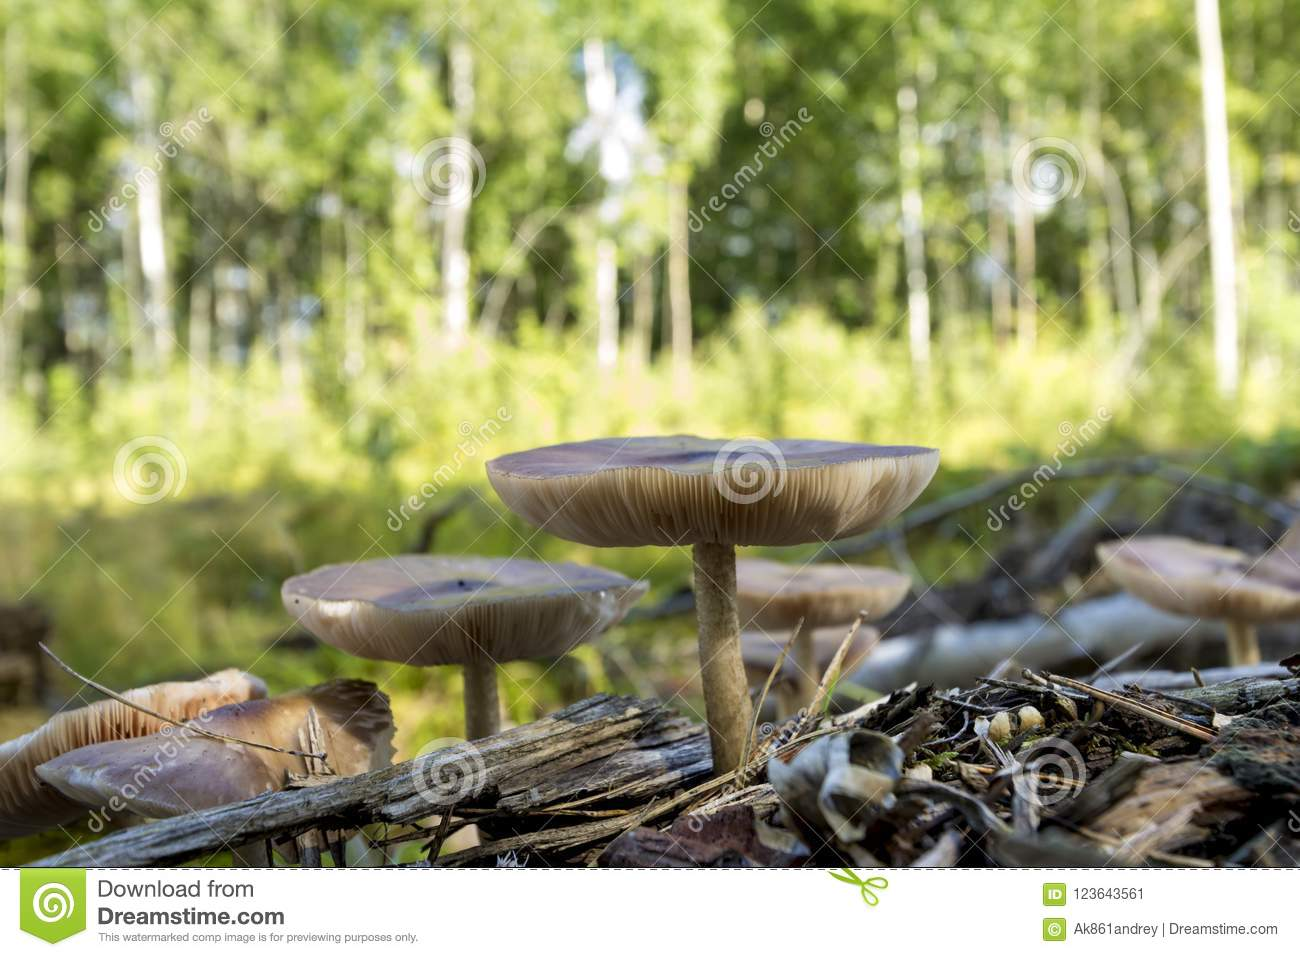 Wild Mushrooms On The Edge Of The Forest Stock Image - Image of ...